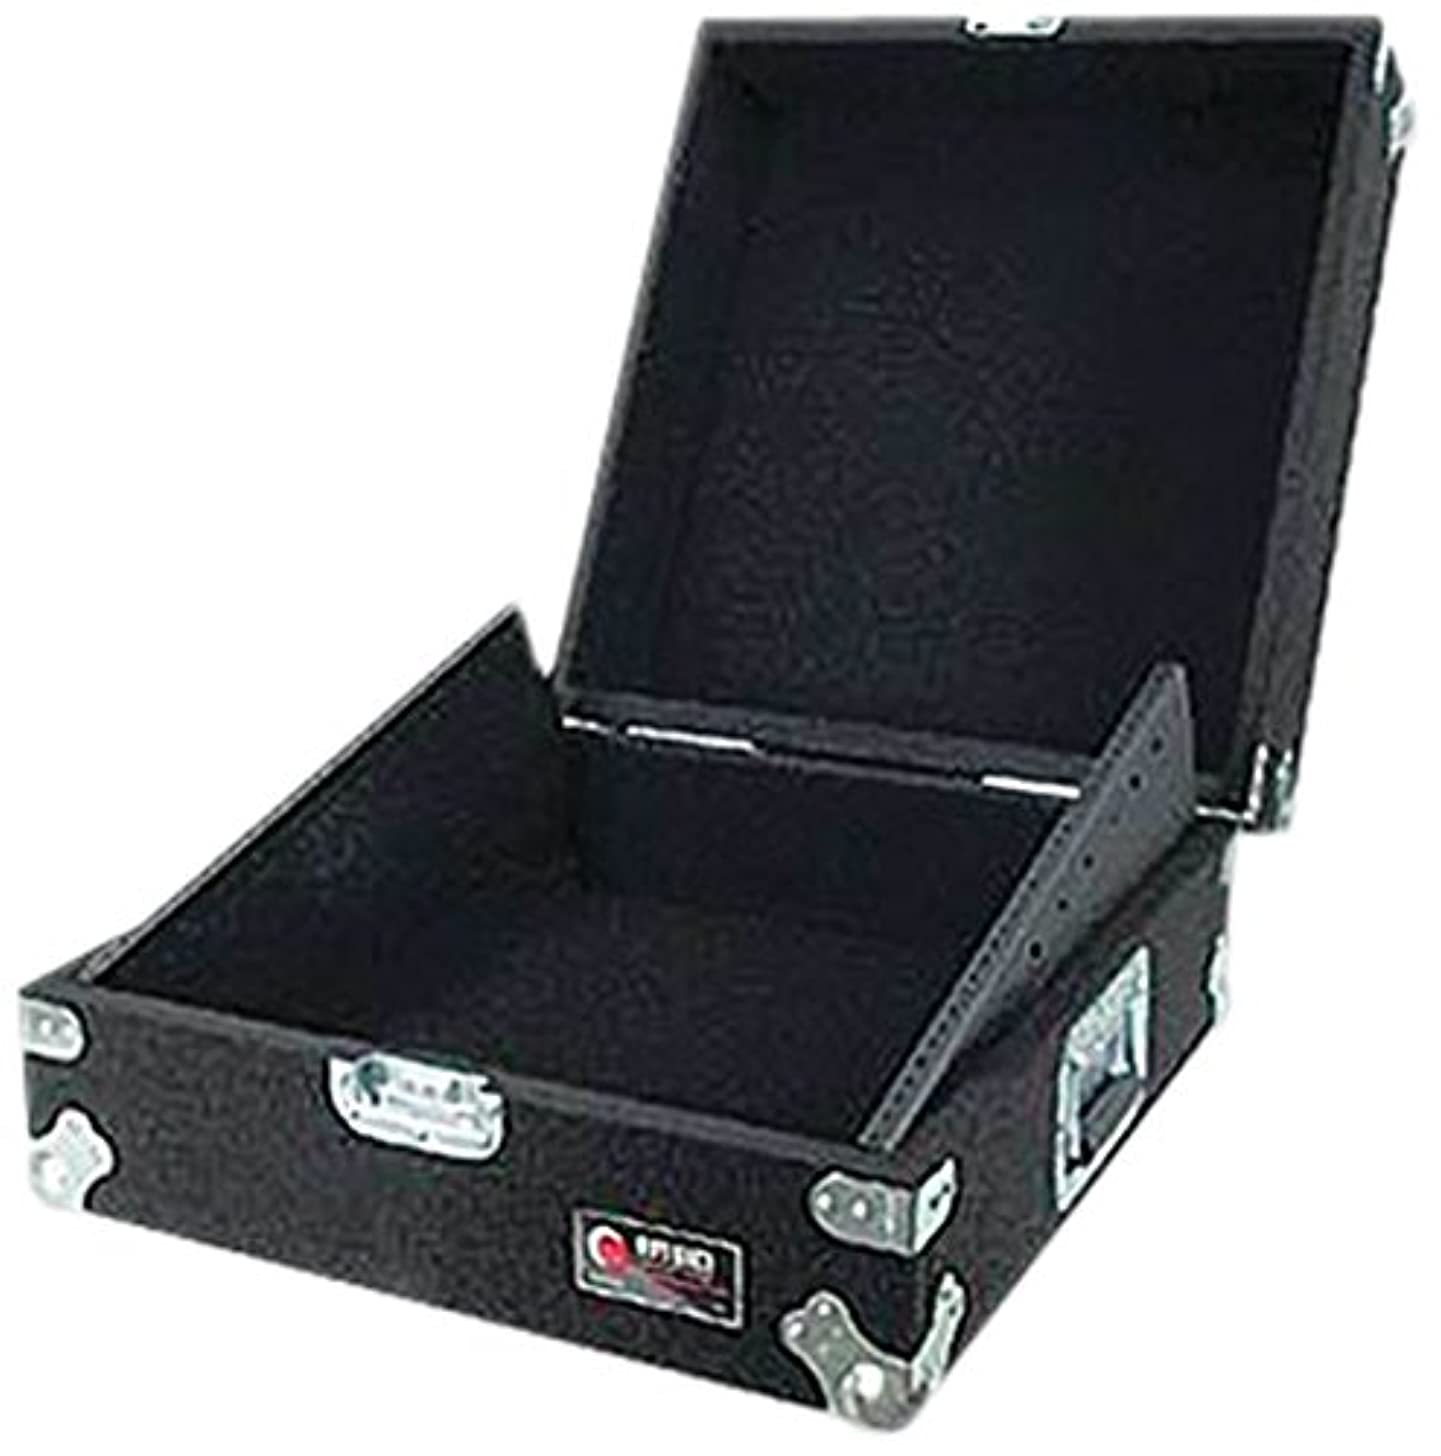 Odyssey CMX11P Carpeted 11 Space 19 Rack Mountable Mixer Case With Recessed Hardware